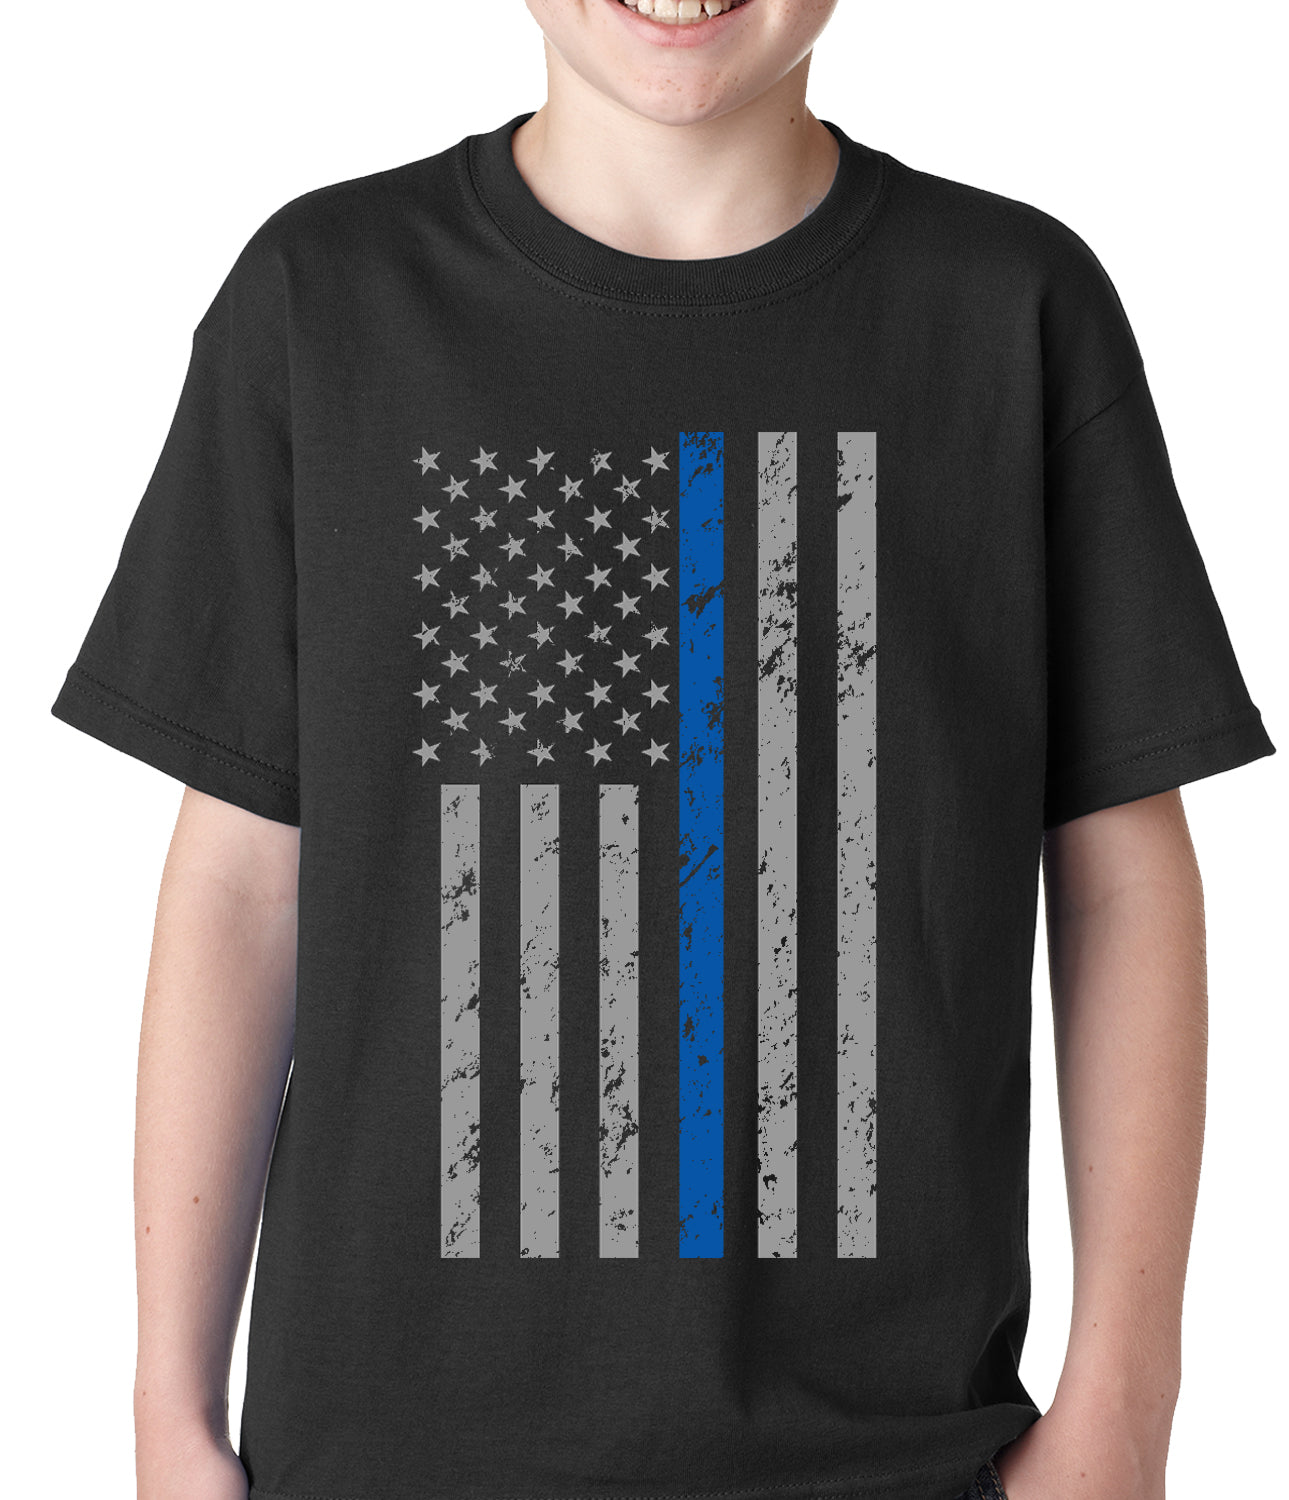 Police Thin Blue Line American Flag - Support Police Department Kids T-shirt